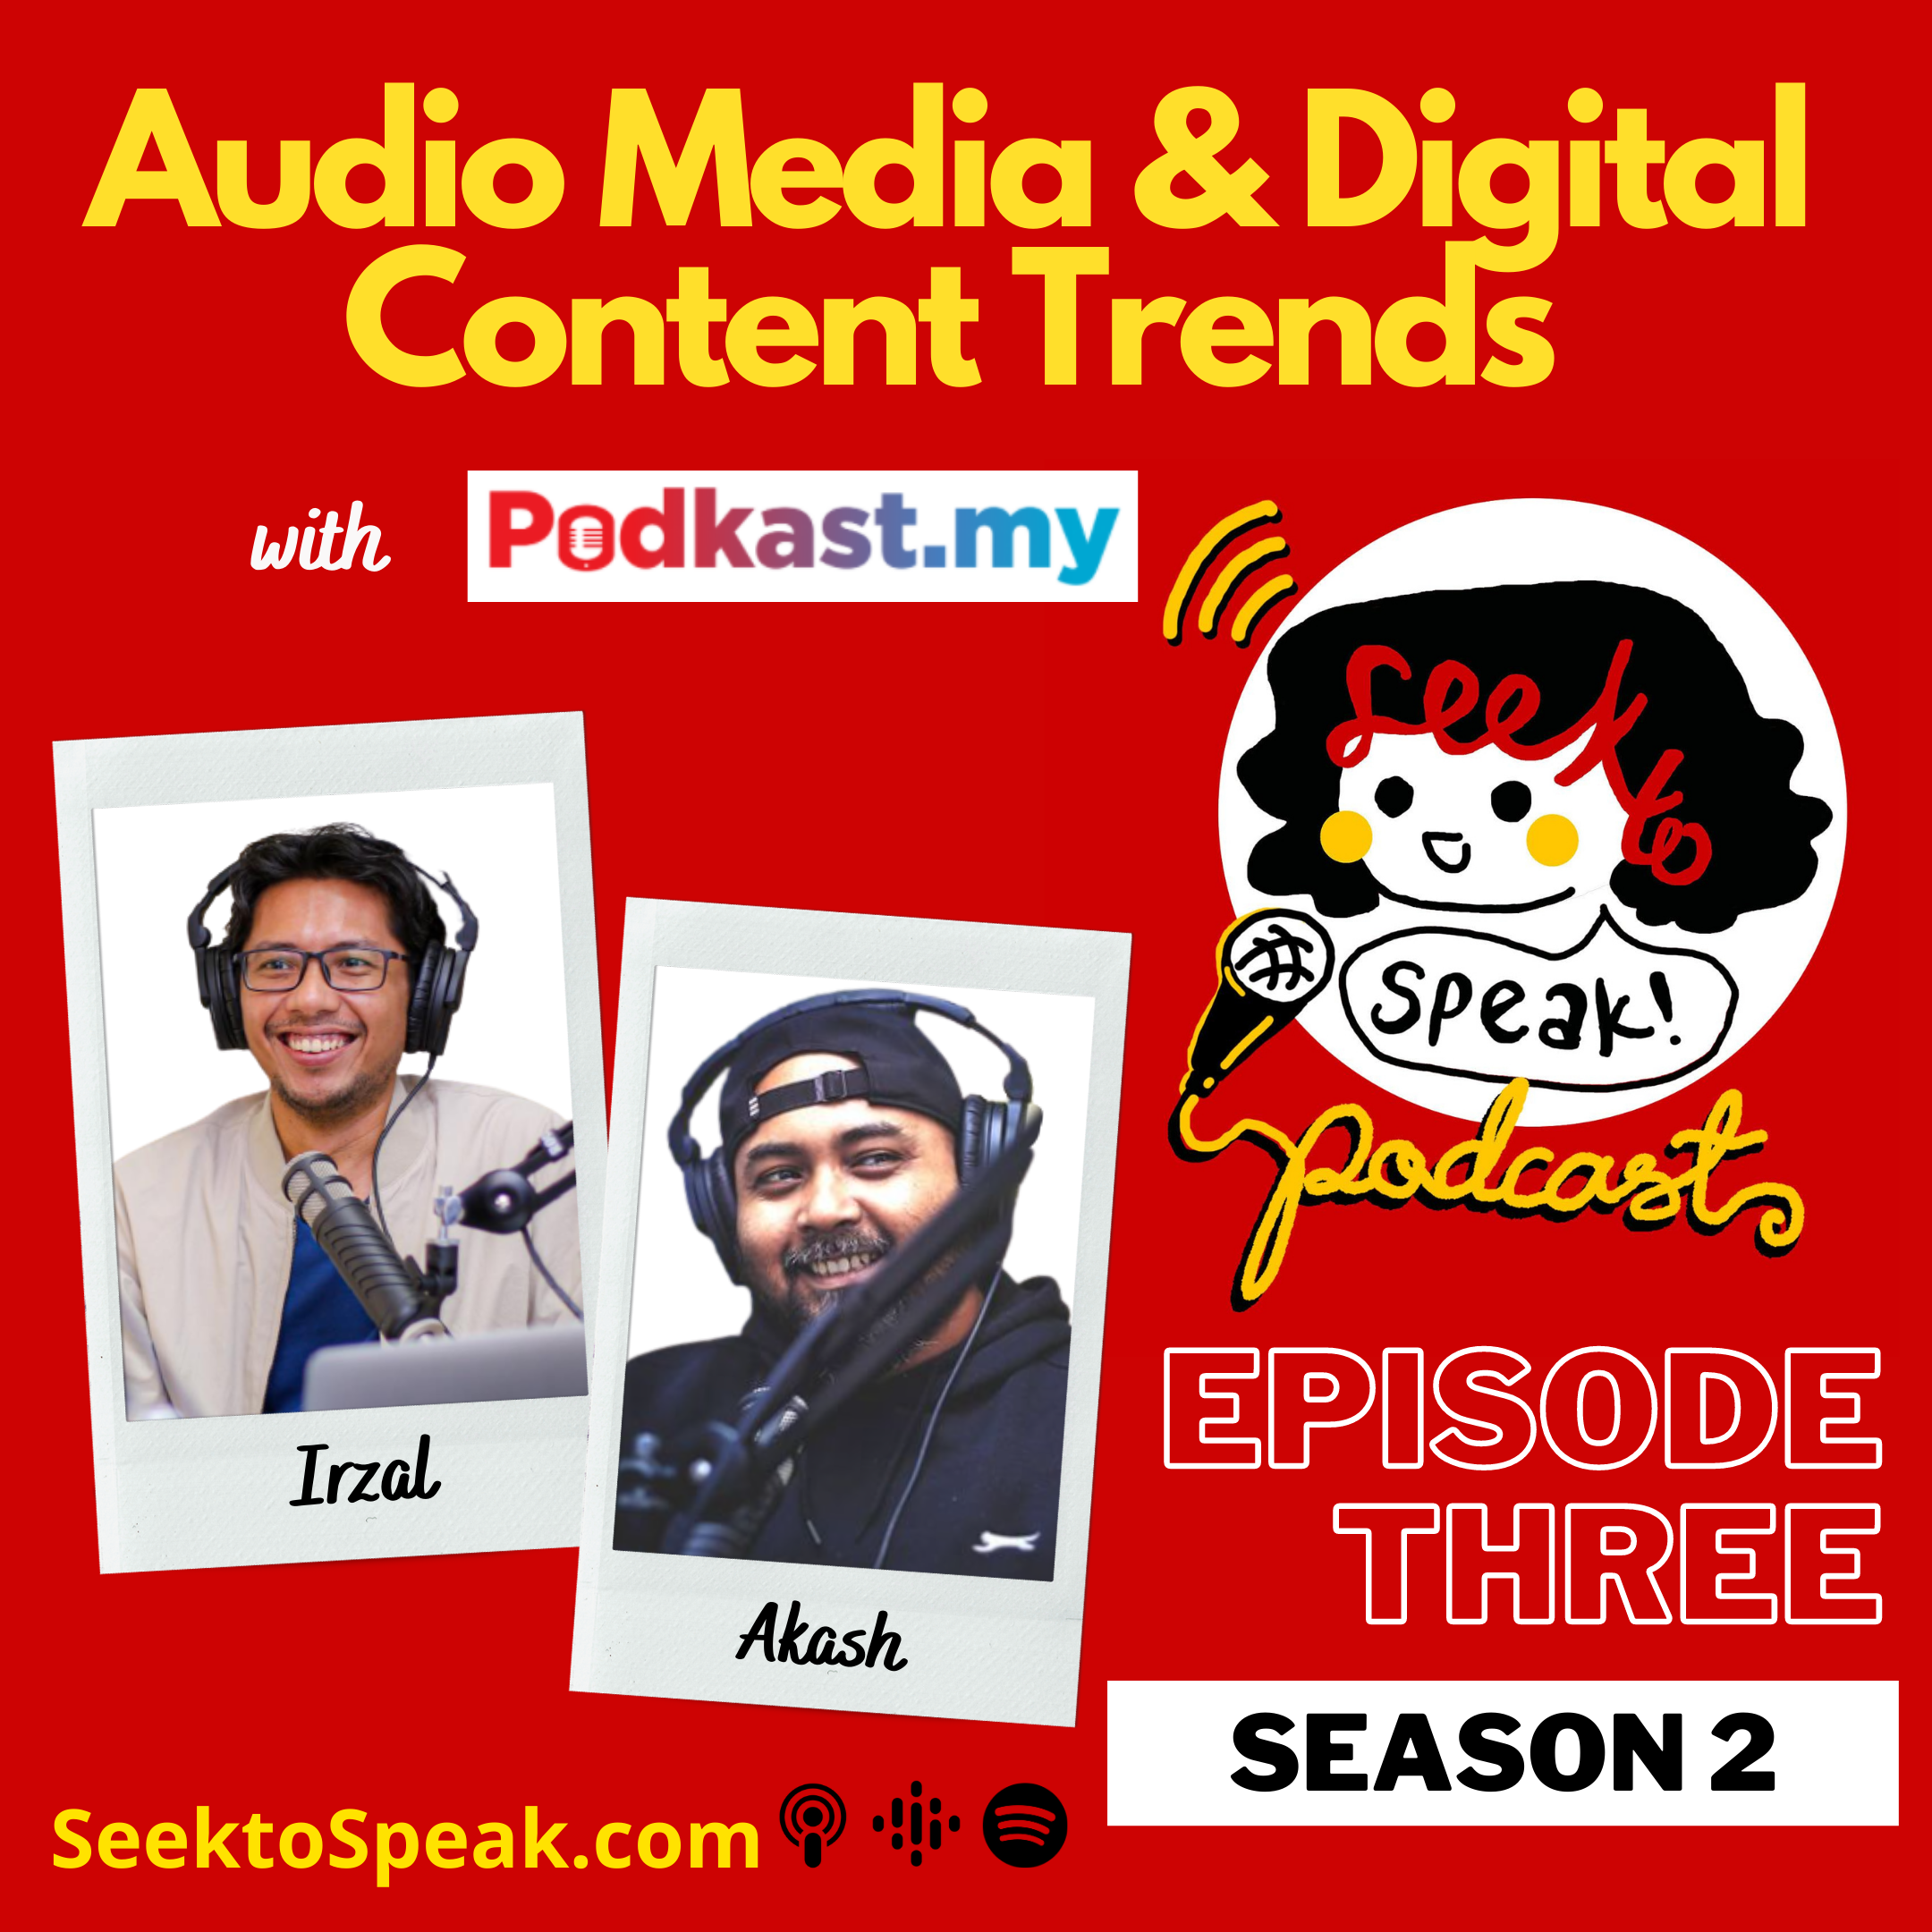 Ep. 3 on Audio Media & Digital Content Trends with Kondenser and Podkast.my